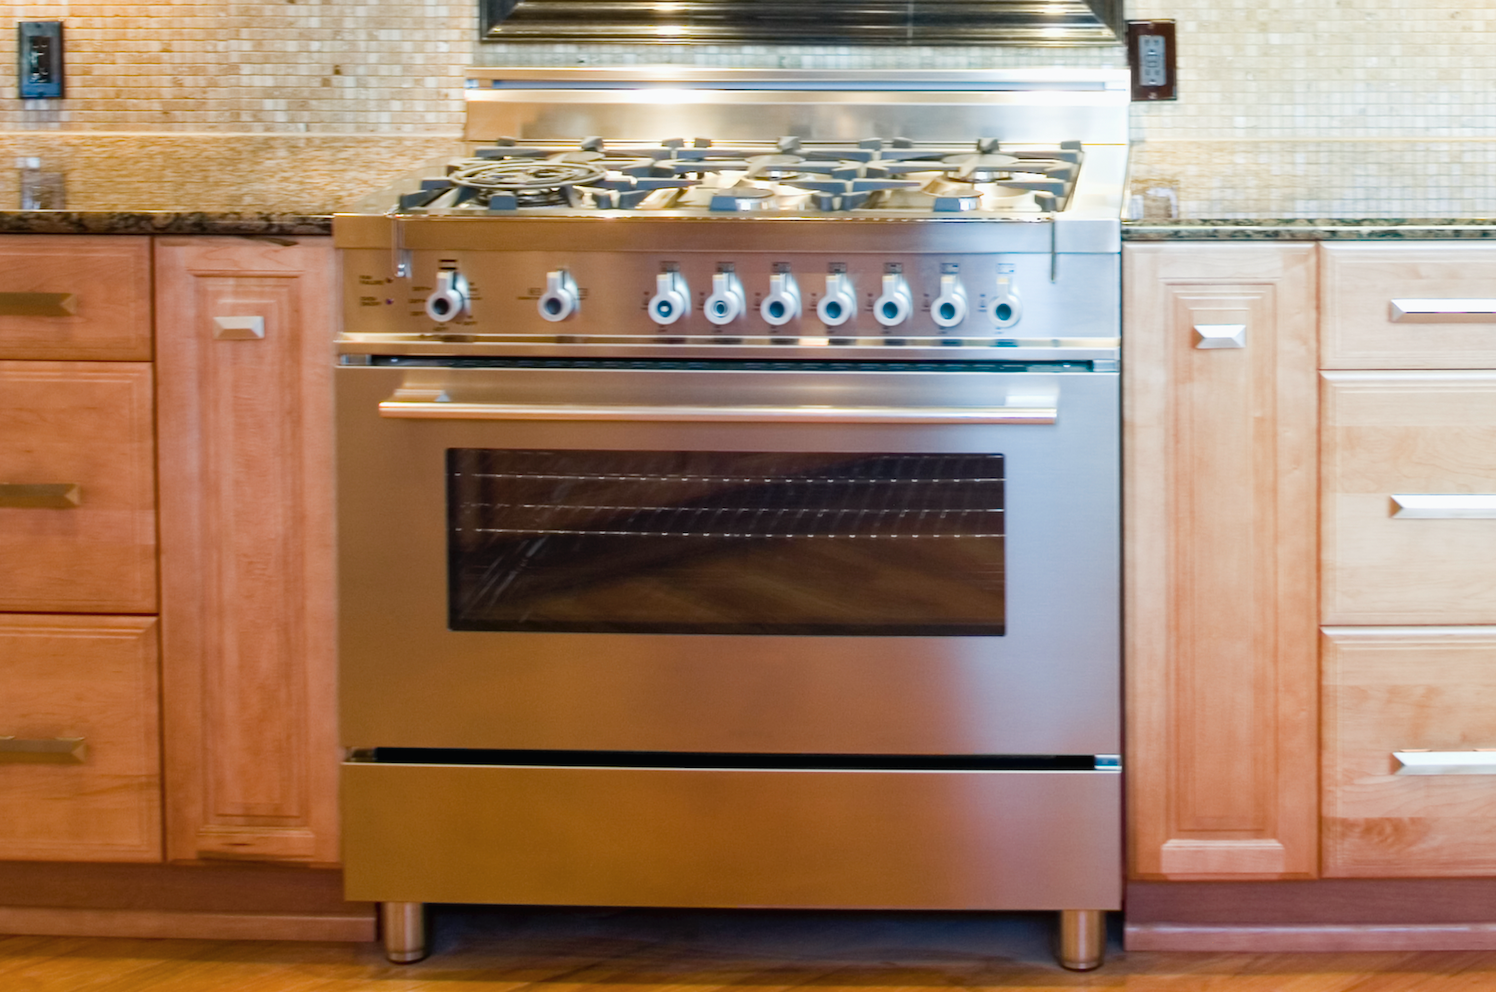 oven getty